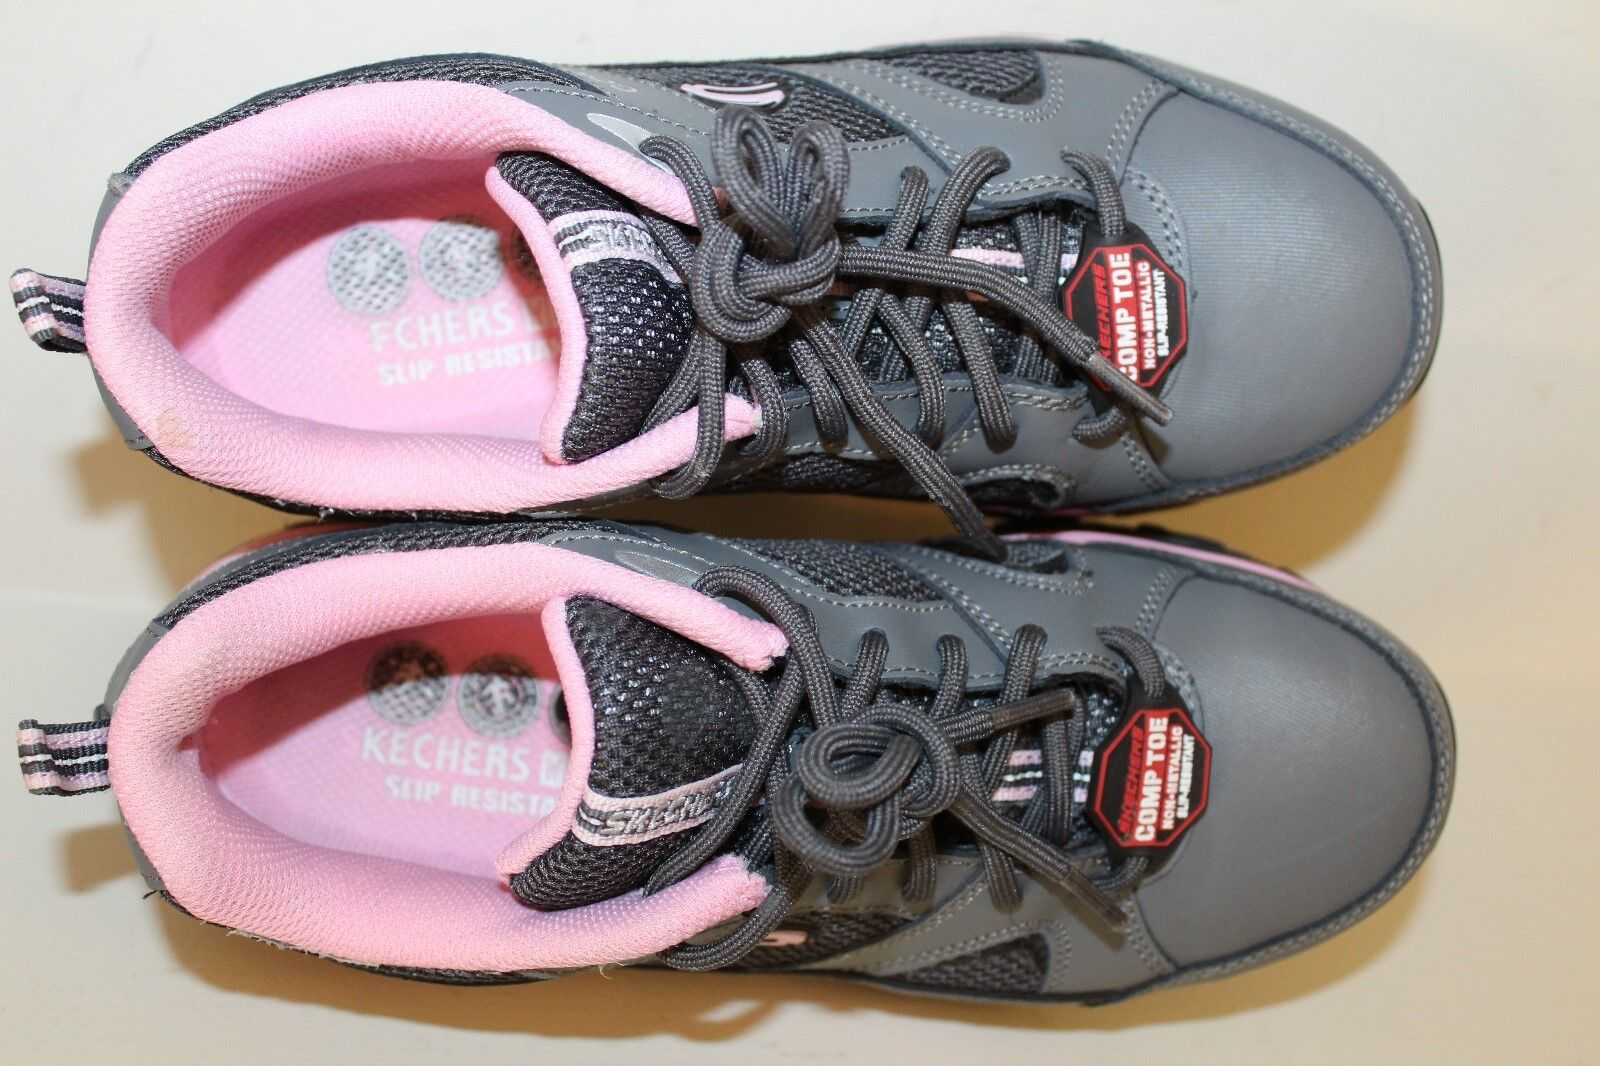 Skechers Damenschuhe Work Work Work Schuhes Sz 8 Work Gray / Pink Leder Comp Toe Oxfords 7b1882